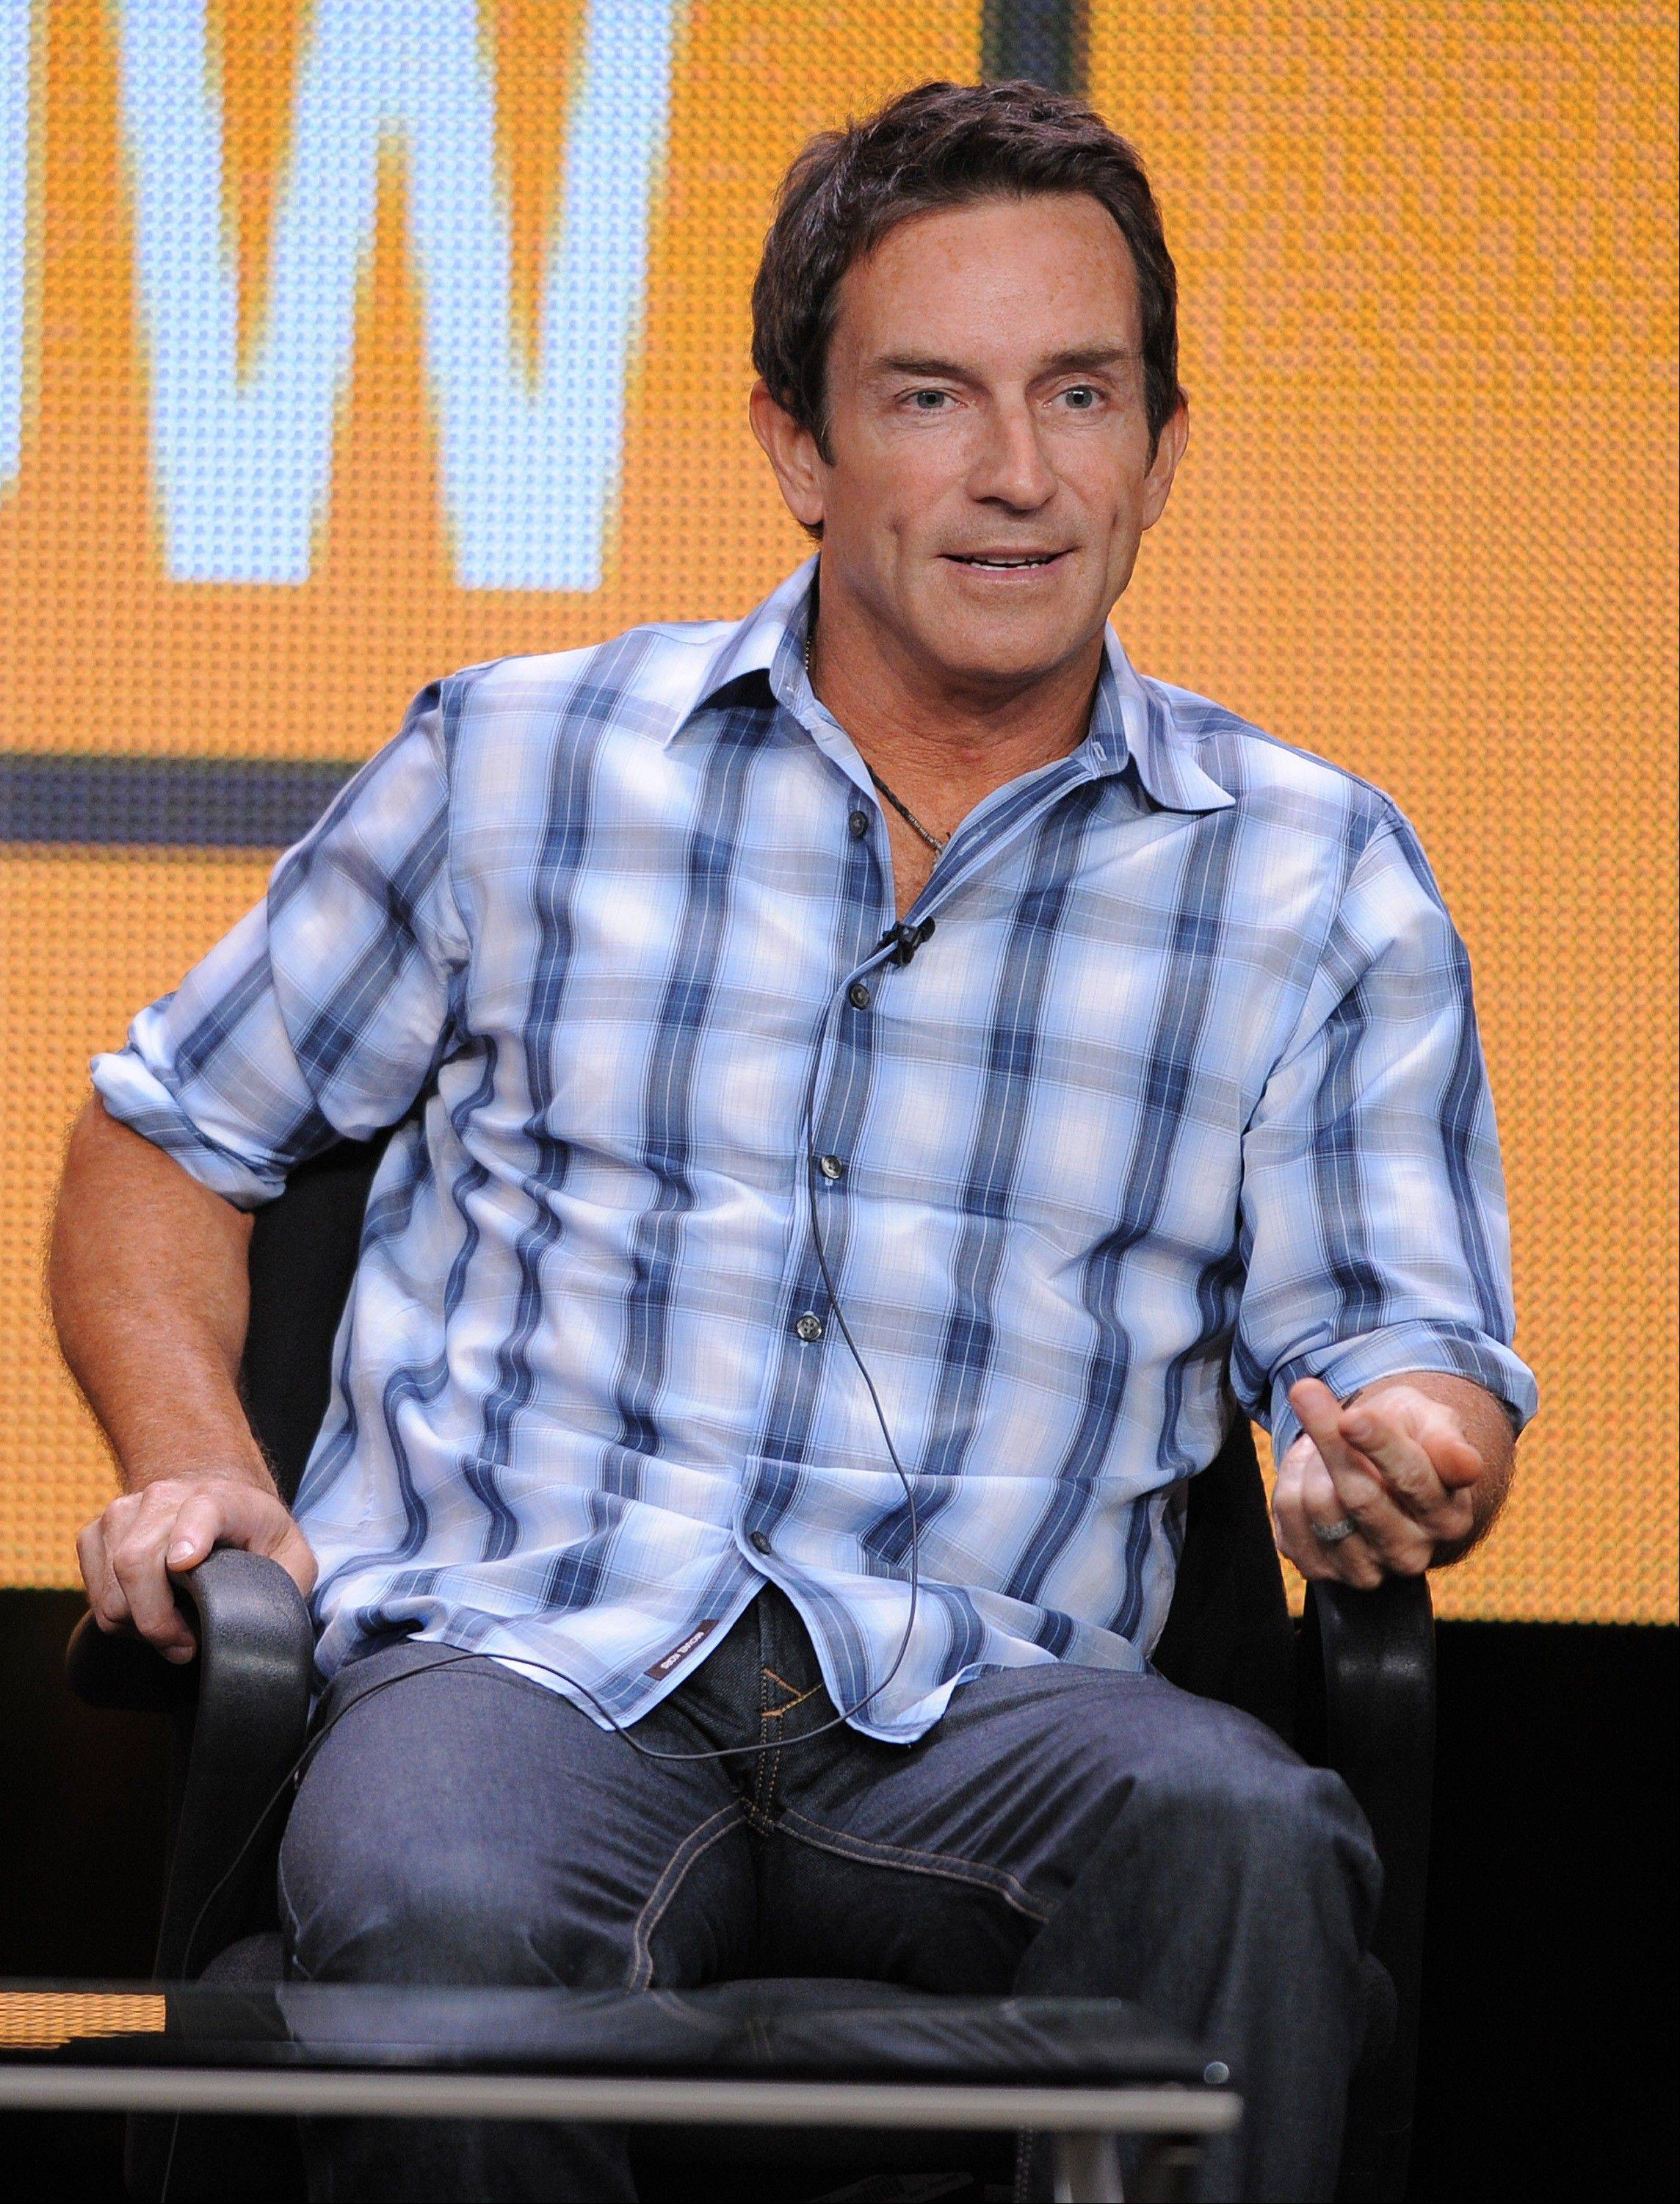 Jeff Probst is part of a crowded Class of 2012 in the daytime talk world. Maybe he'll succeed and maybe he won't. But he's determined to have fun trying.